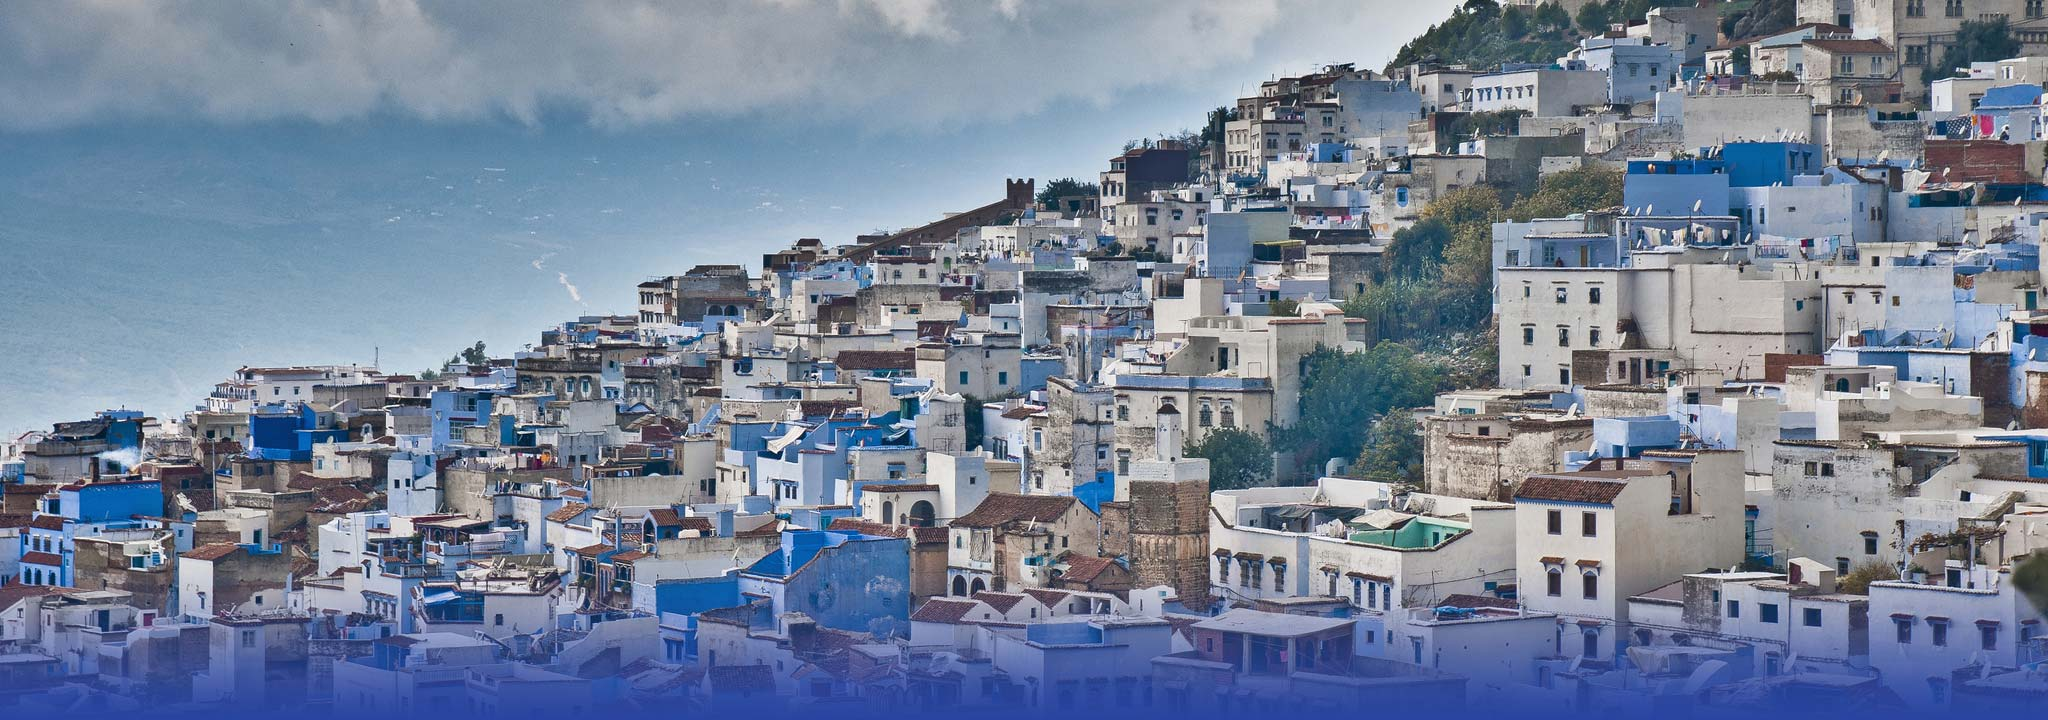 Chefchaouen – Vibrancy and charme in the Rif Mountains